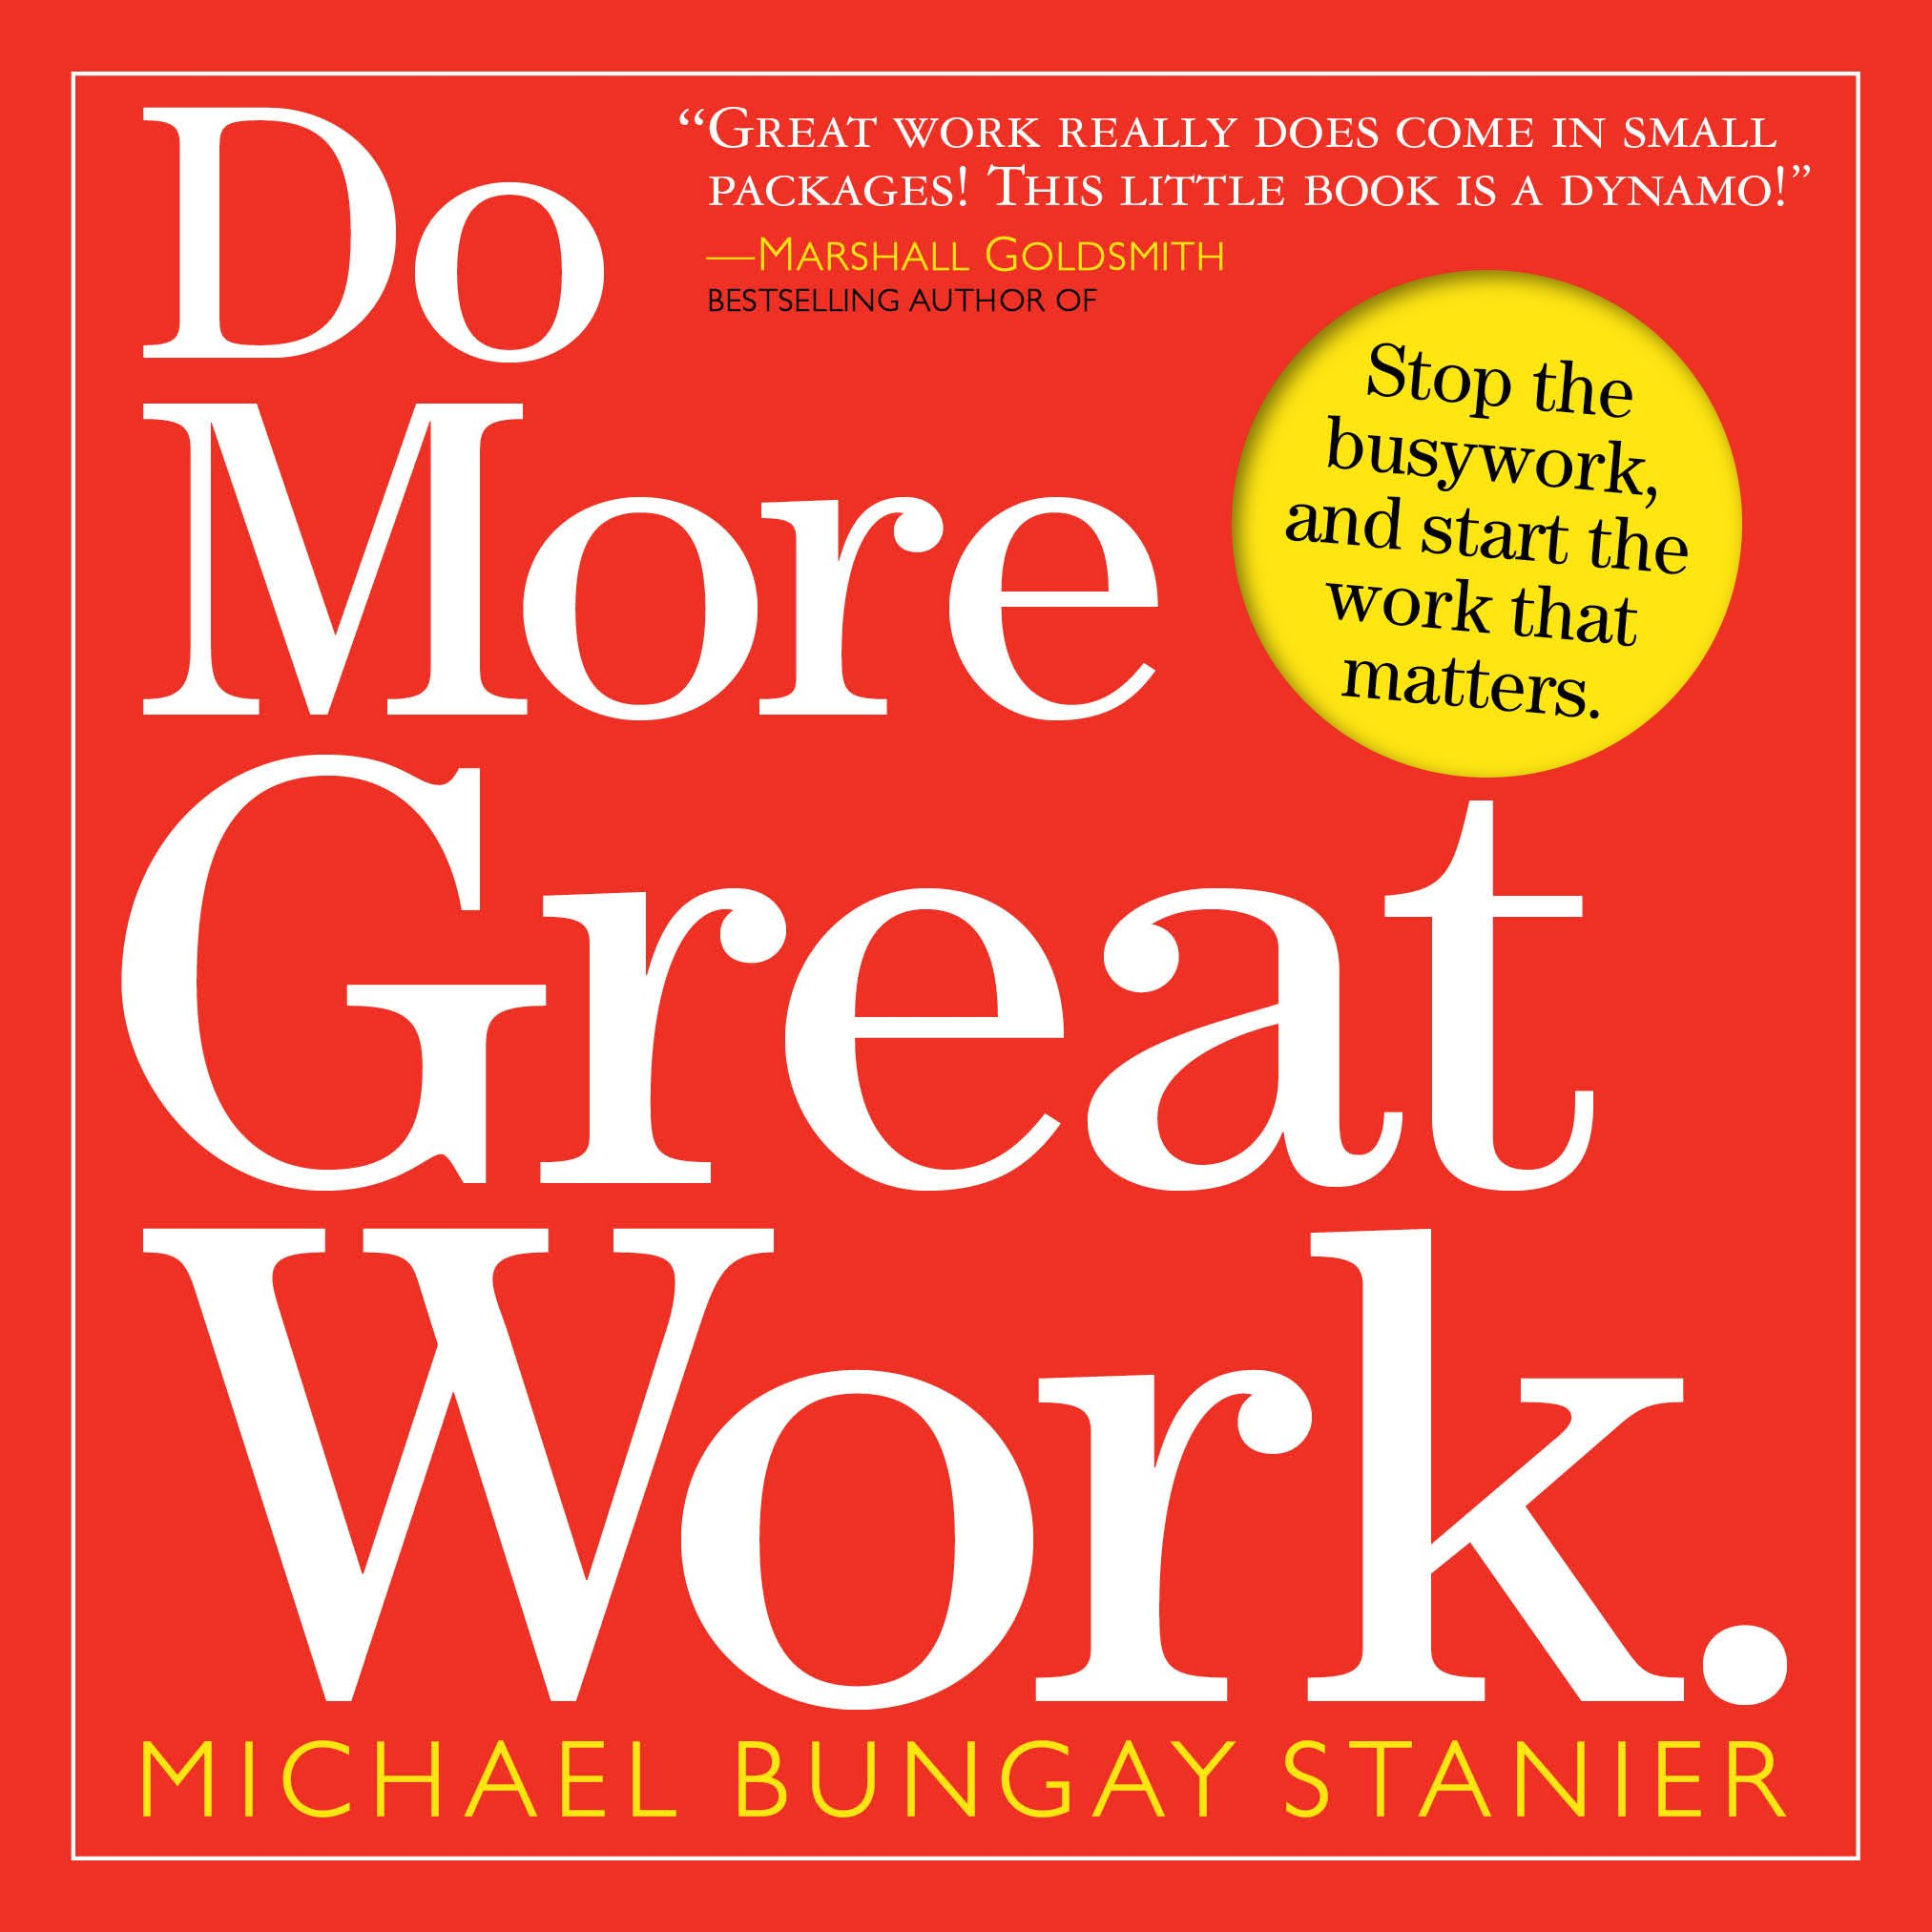 Do More Great Work: Stop the Busywork, and Start the Work That Matters ISBN-13 9780761156444